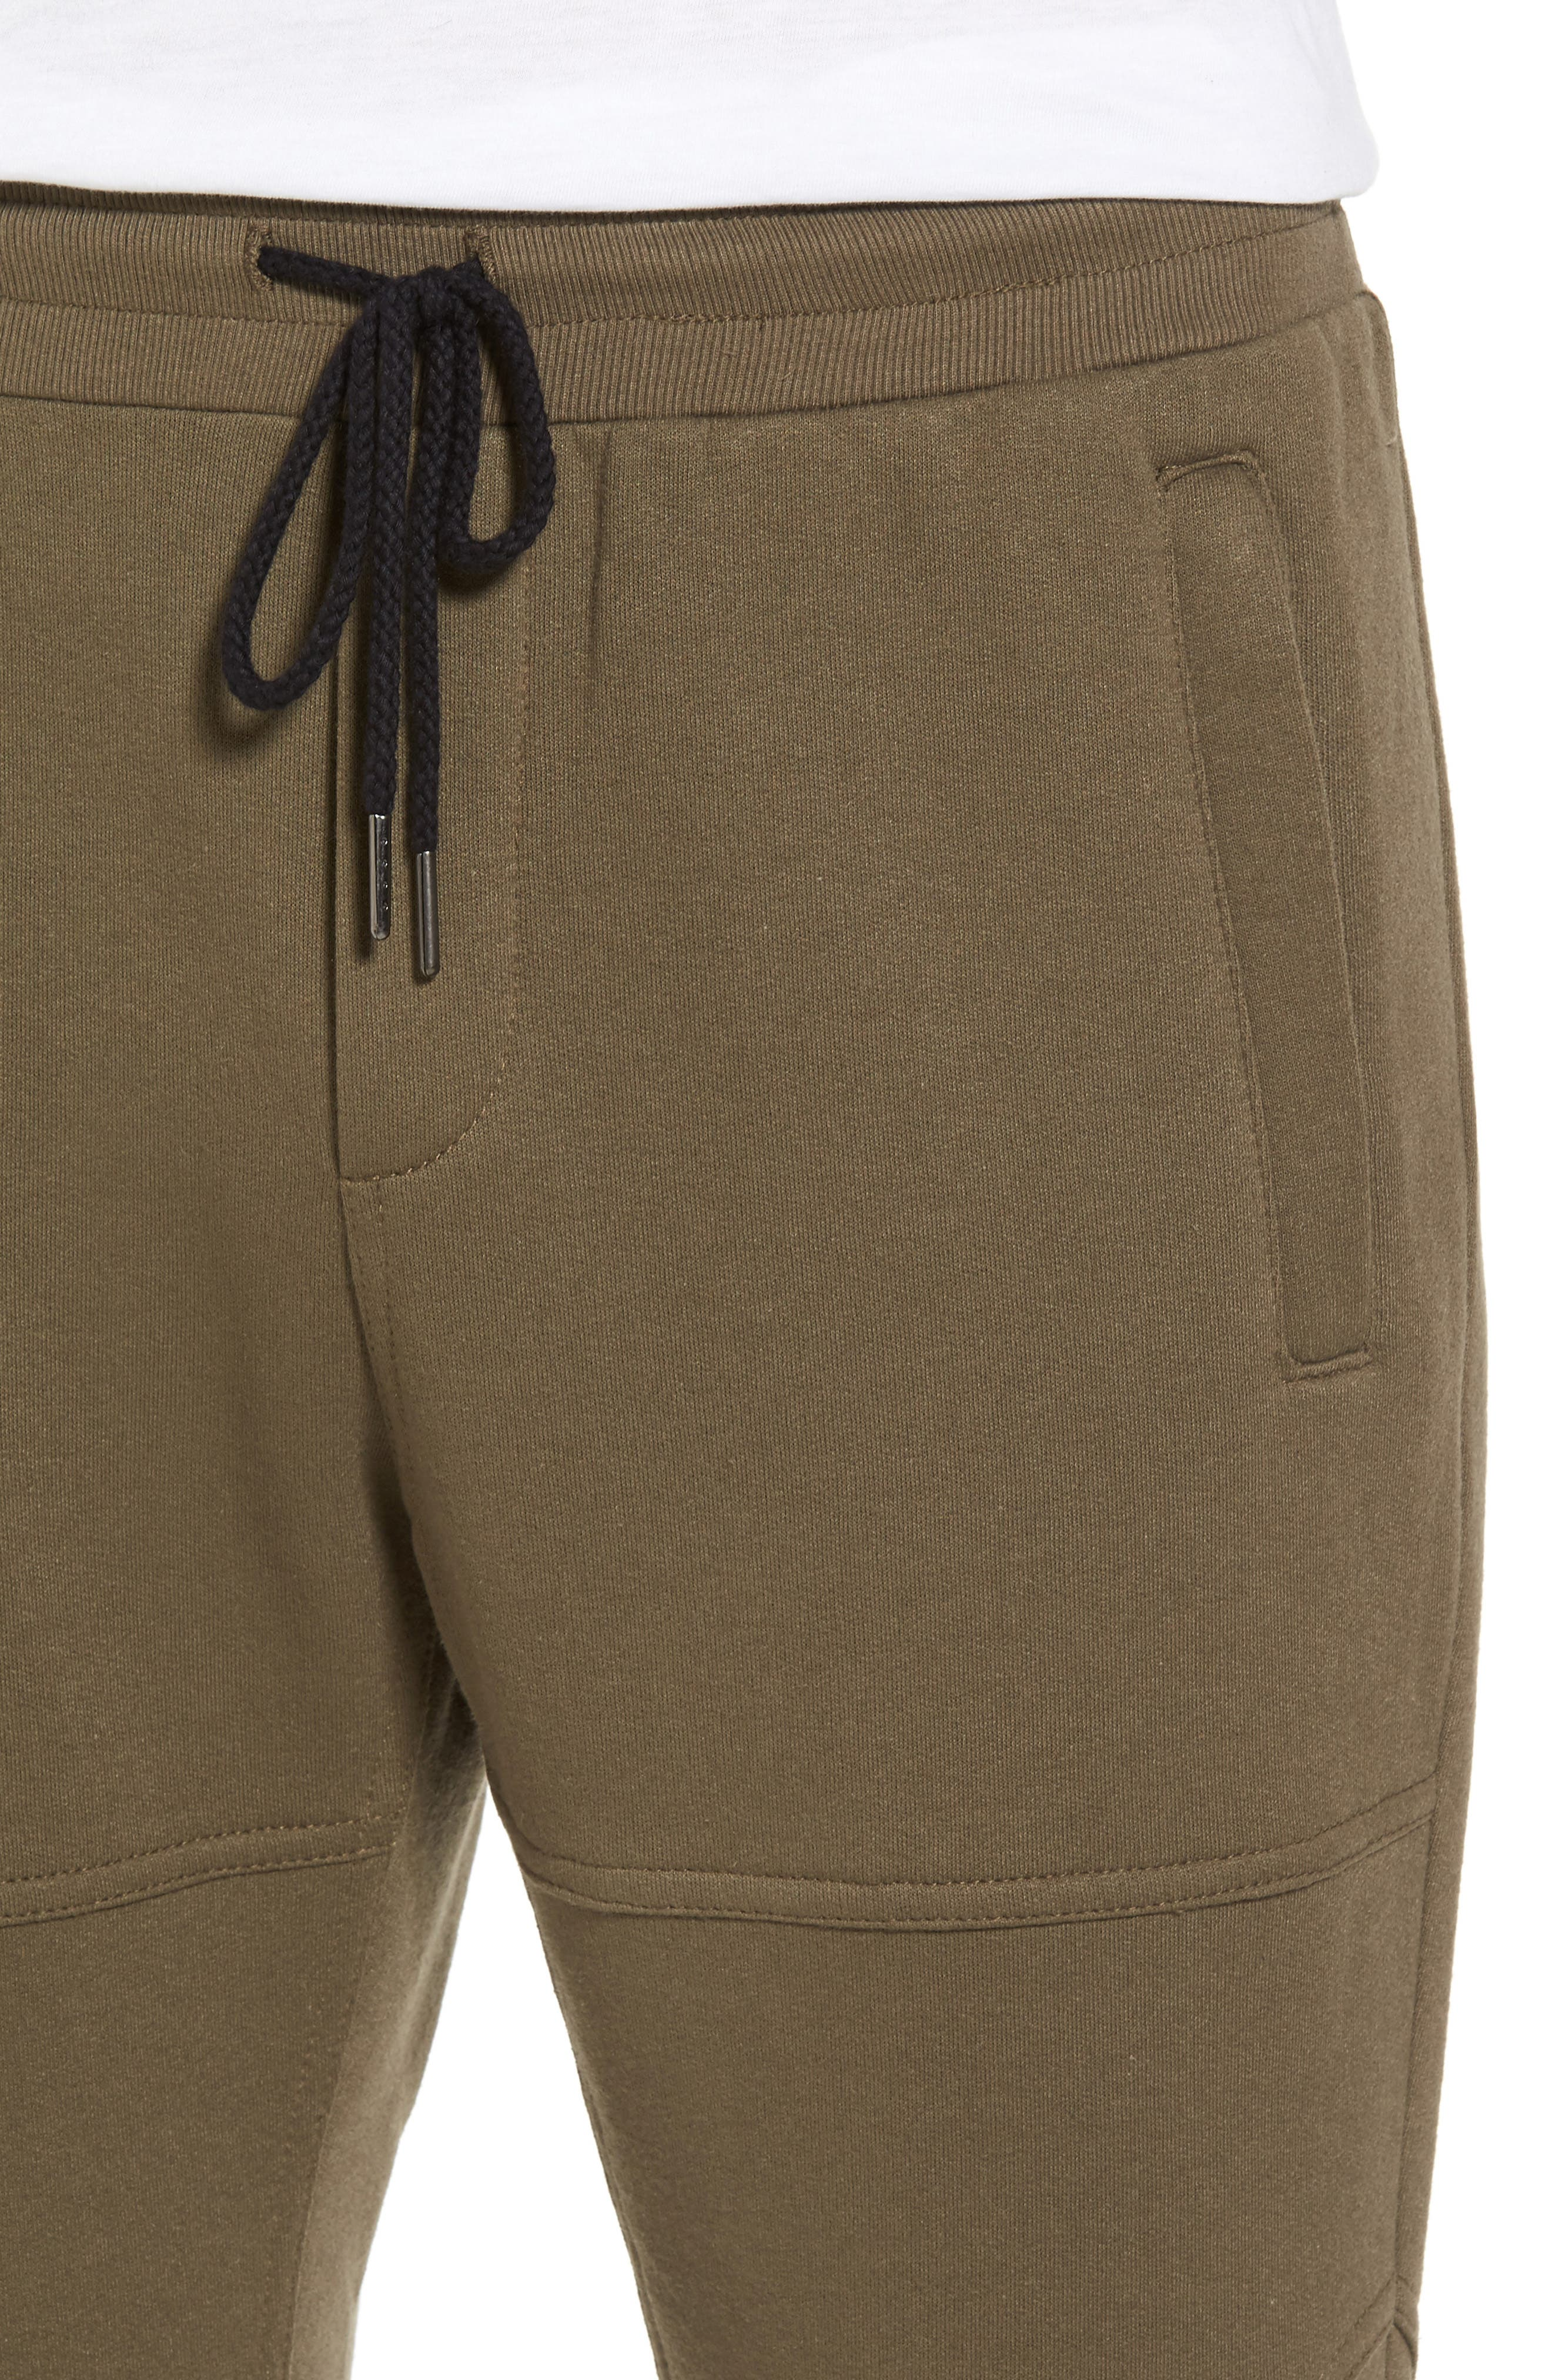 French Terry Sweatpants,                             Alternate thumbnail 4, color,                             Army